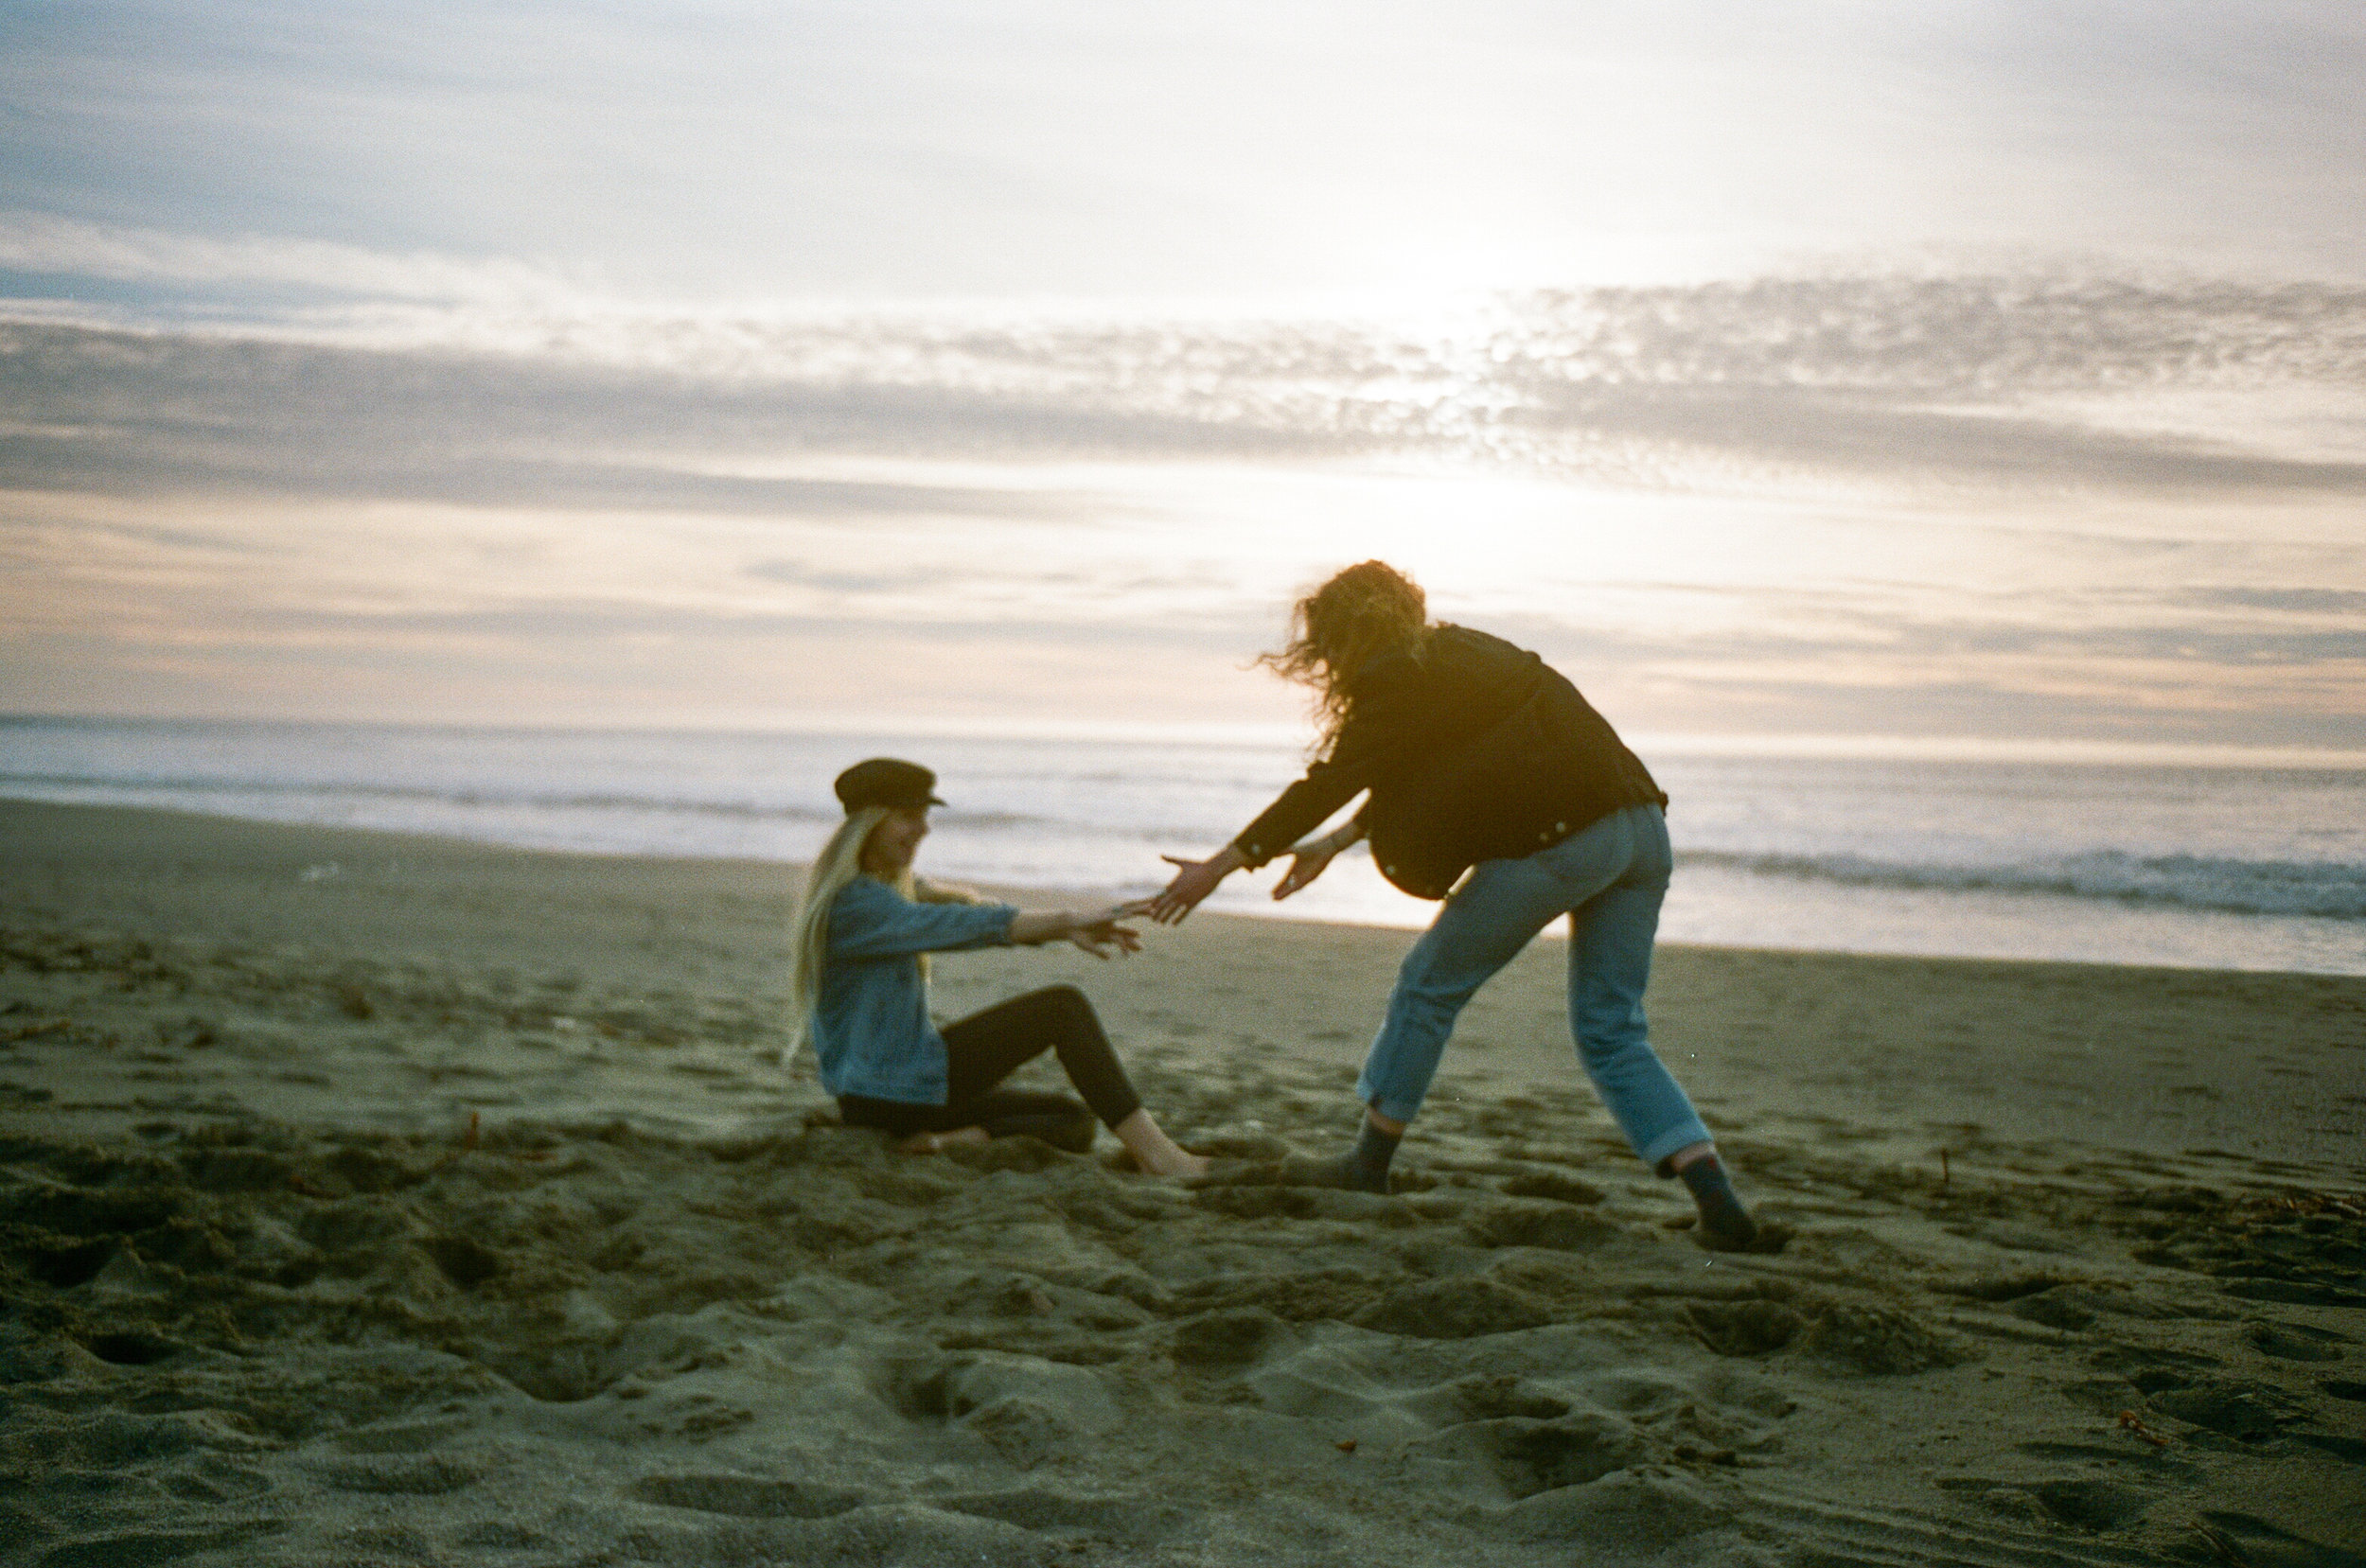 hannah&cole-california-film-jan2019-peytoncurry-000098780004.jpg